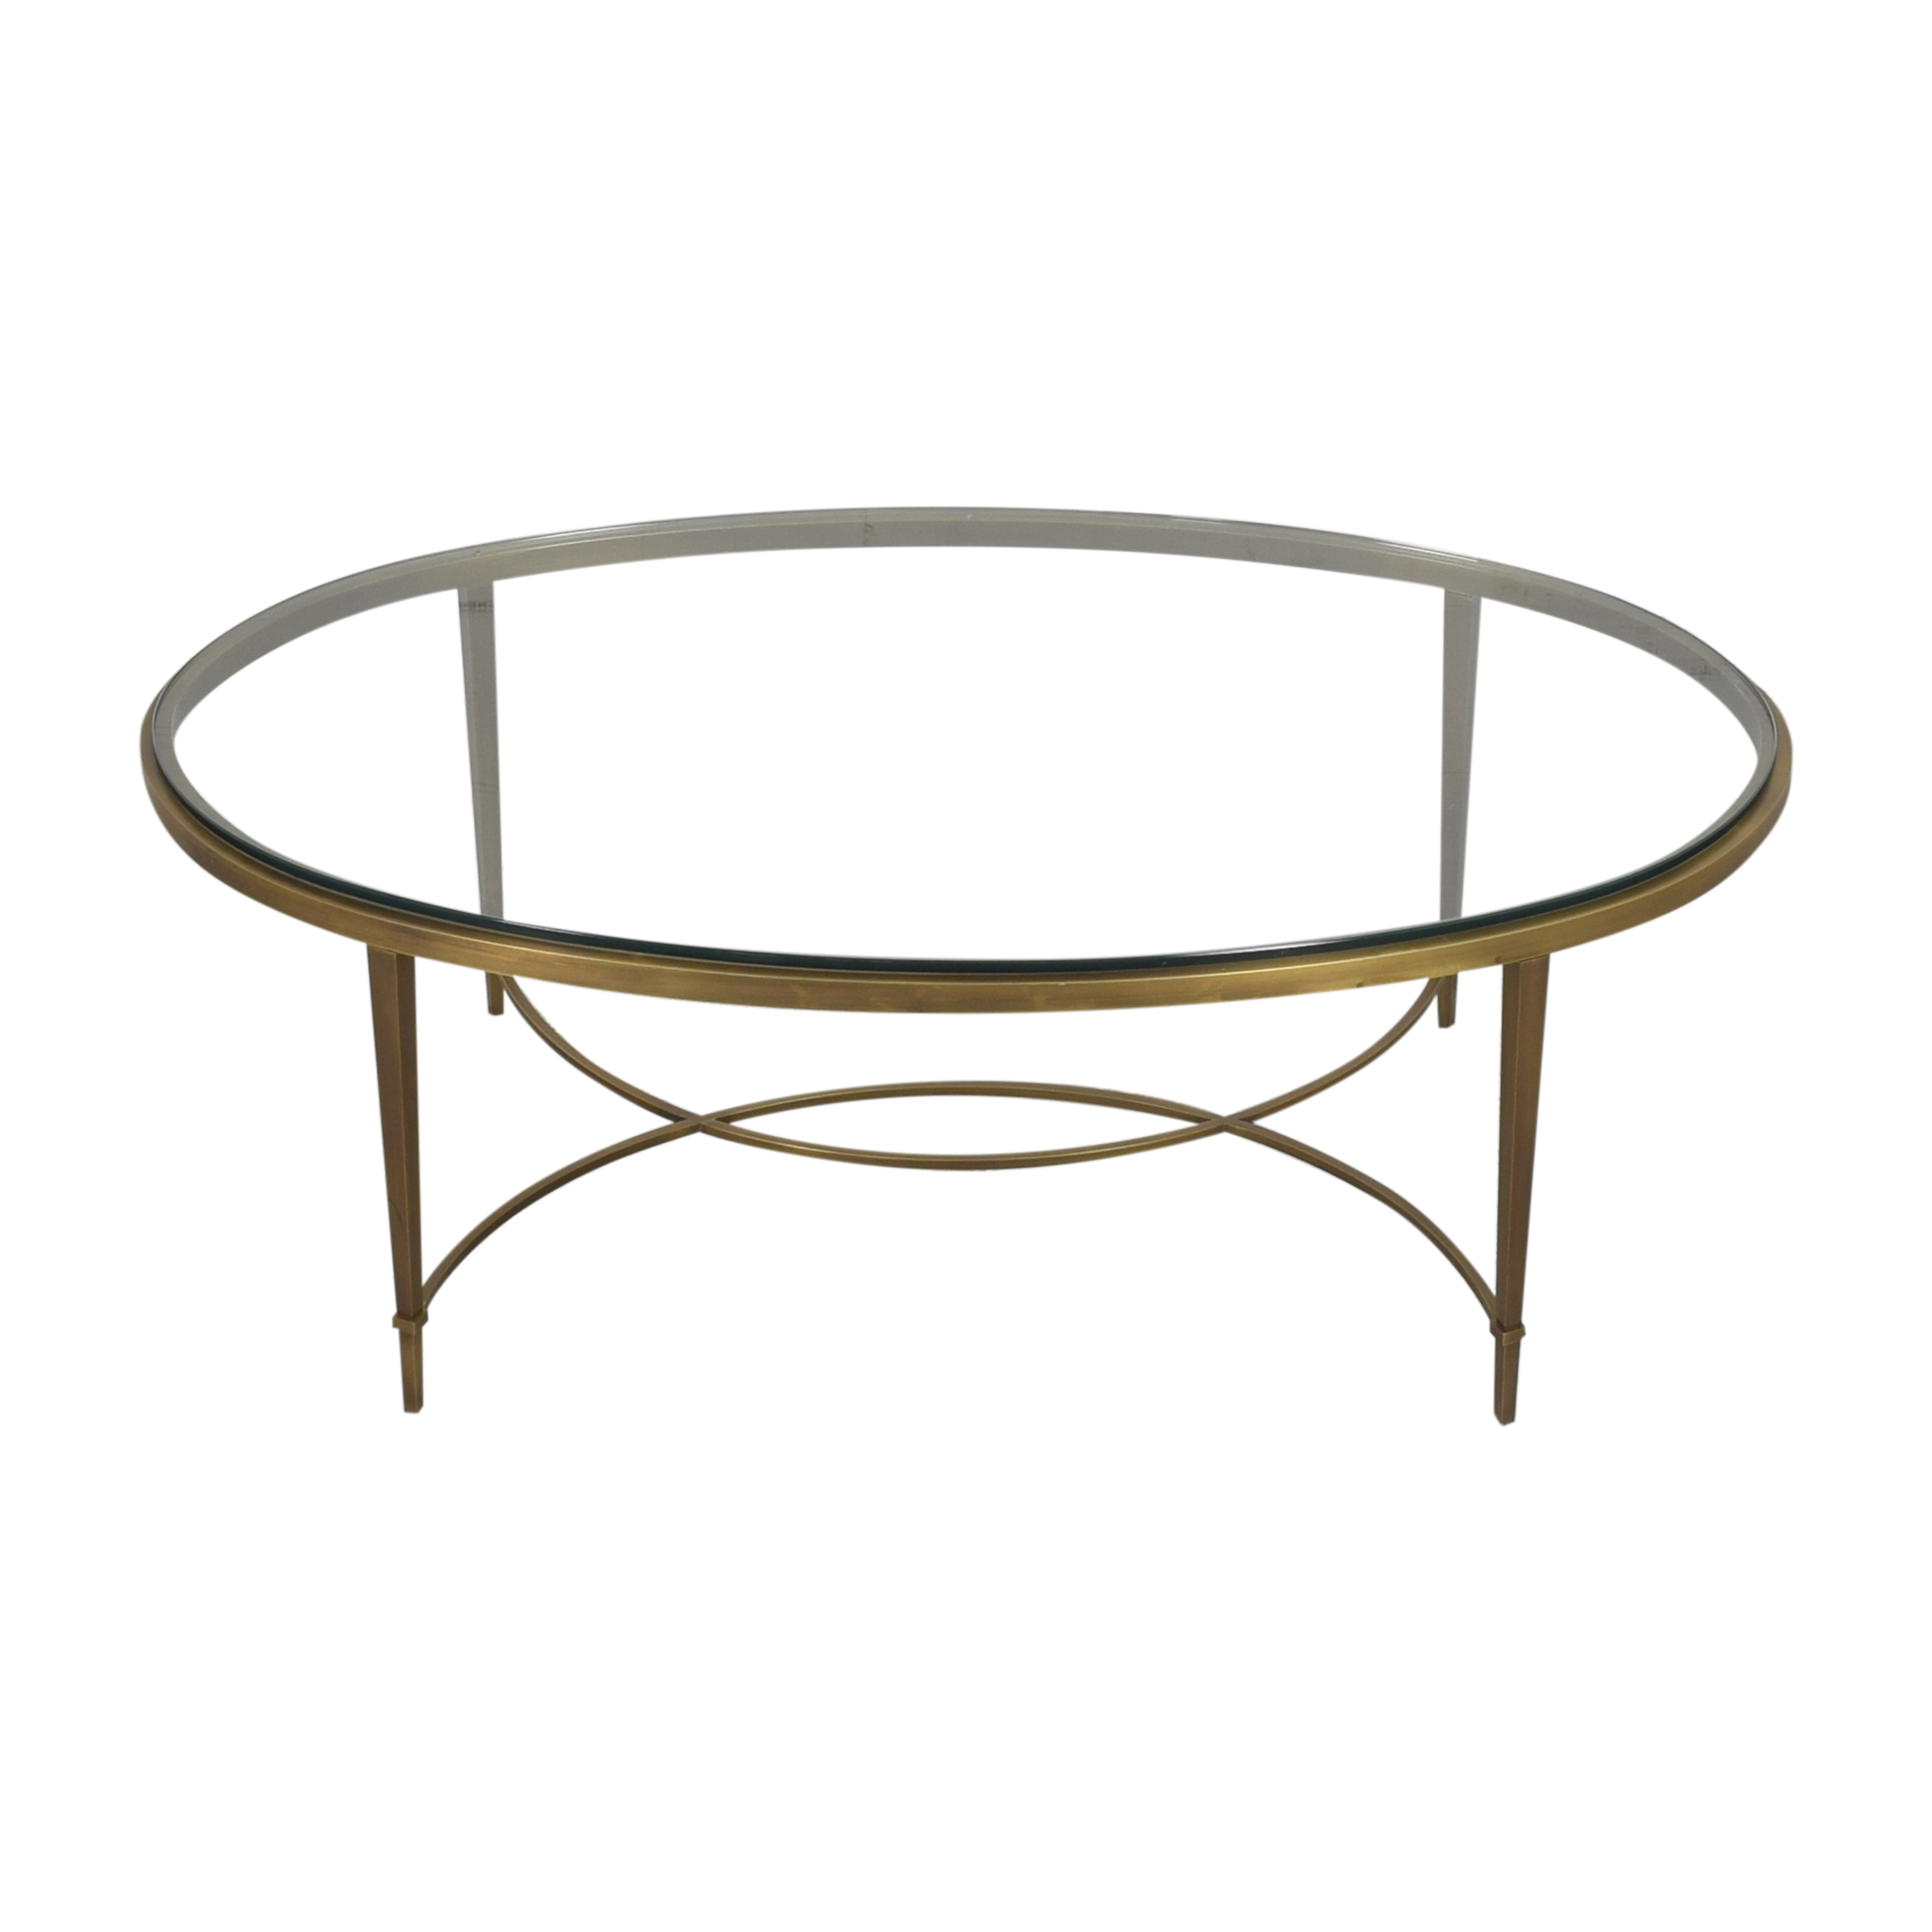 Baker Furniture Oval Coffee Table sale